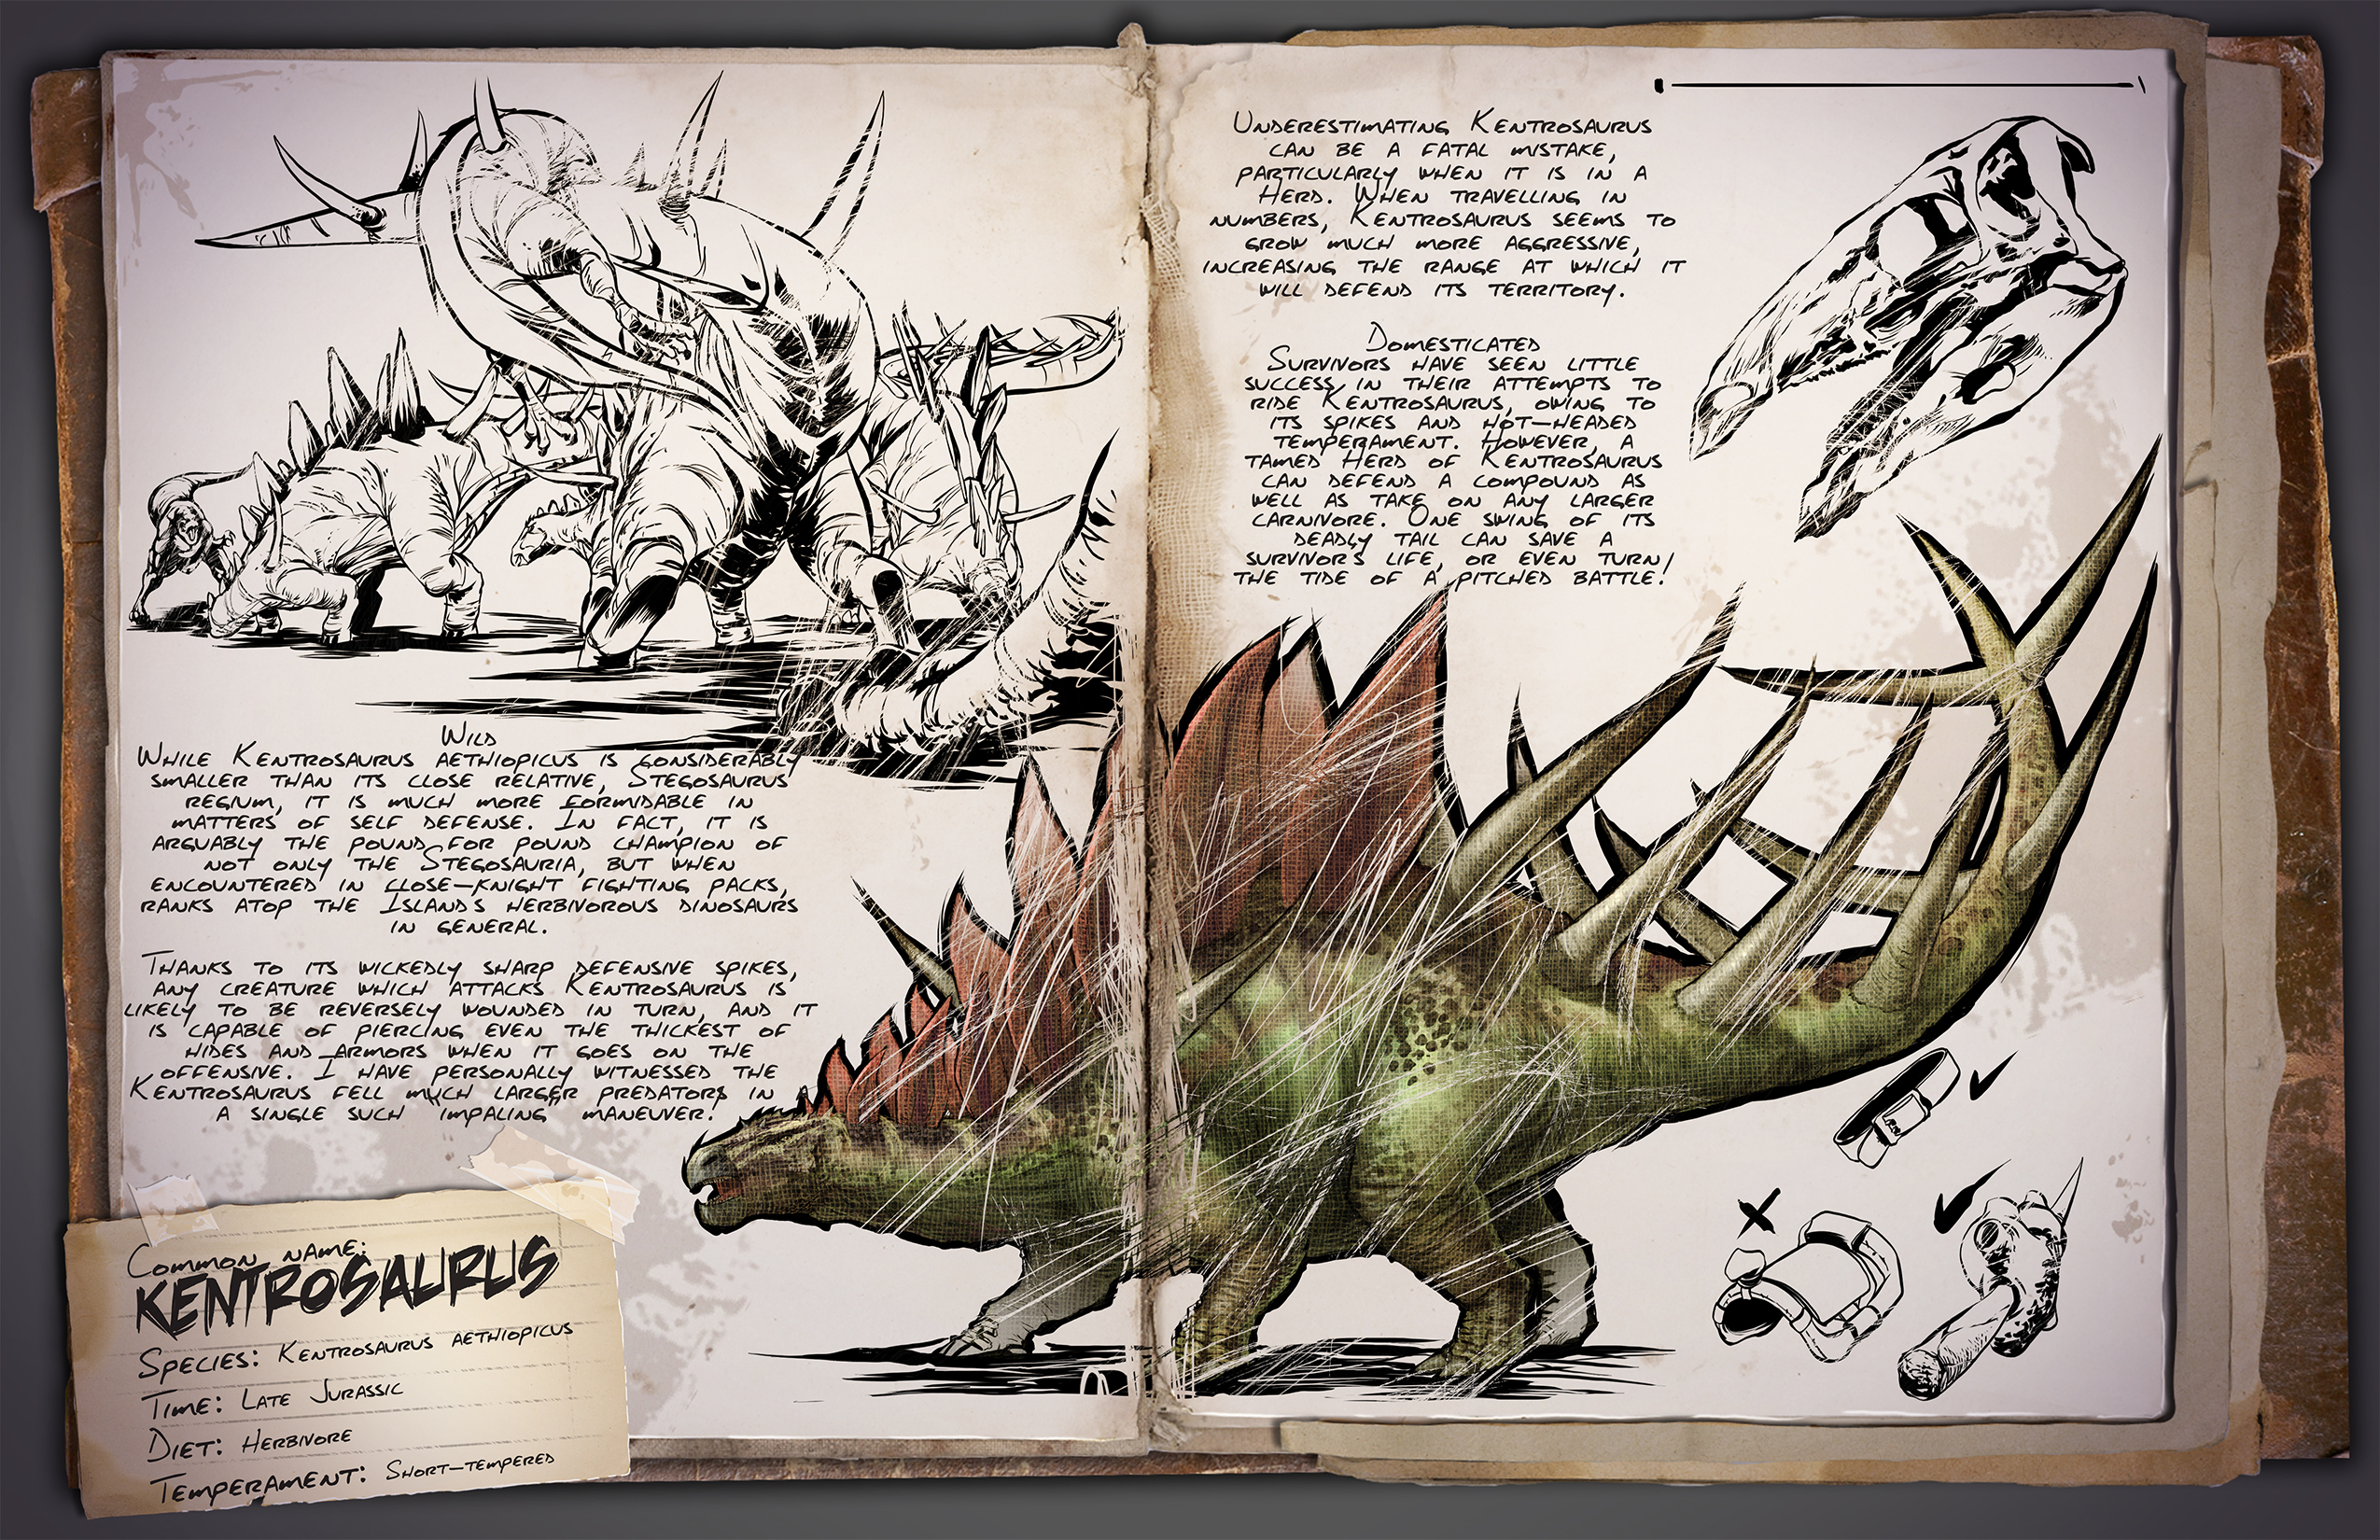 Oct 4, 2016 How to get started in Ark: Survival Evolved ARK